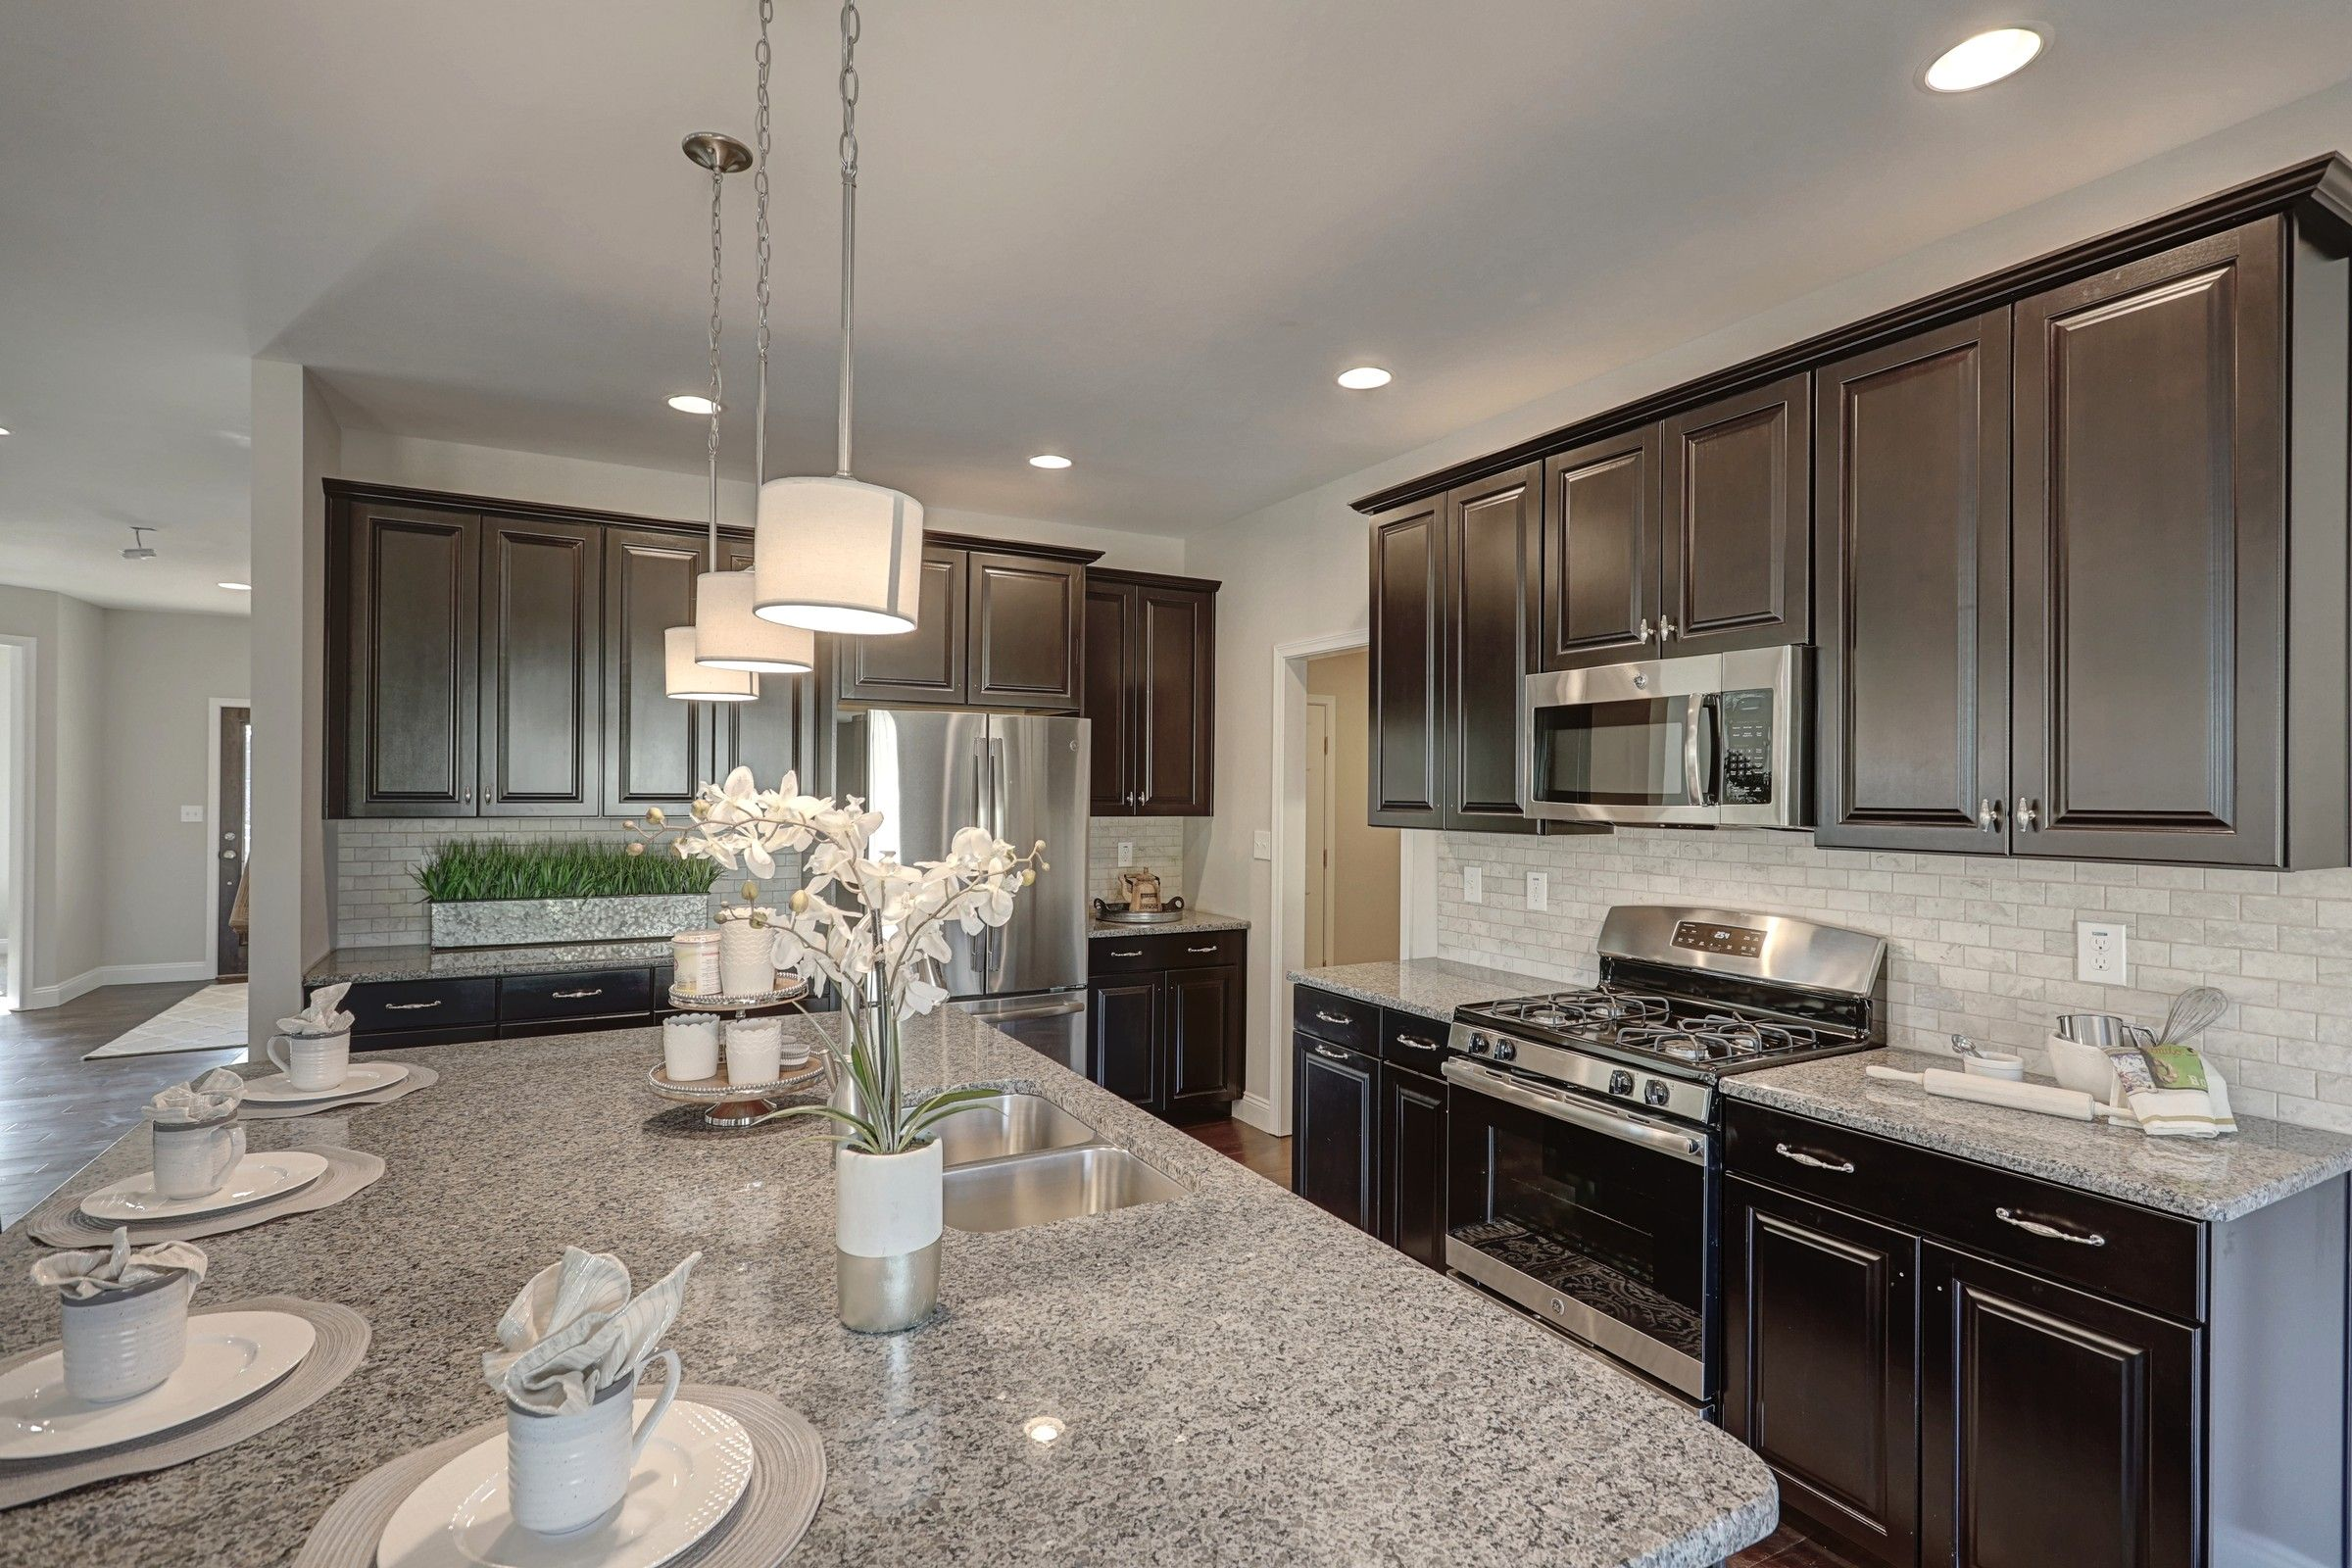 Kitchen featured in the Covington Heritage By Keystone Custom Homes in Washington, MD